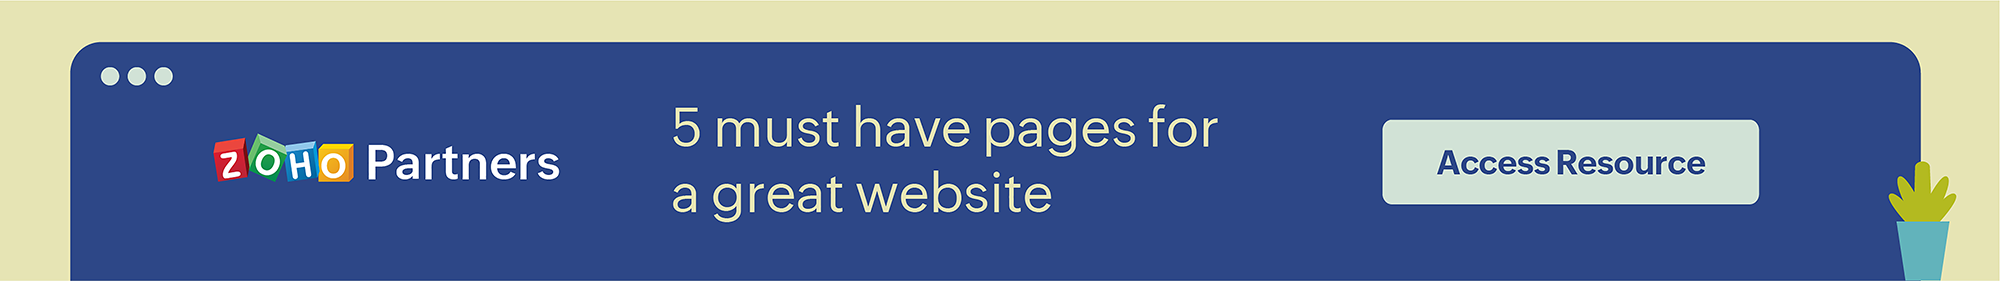 5 must have pages for your website.